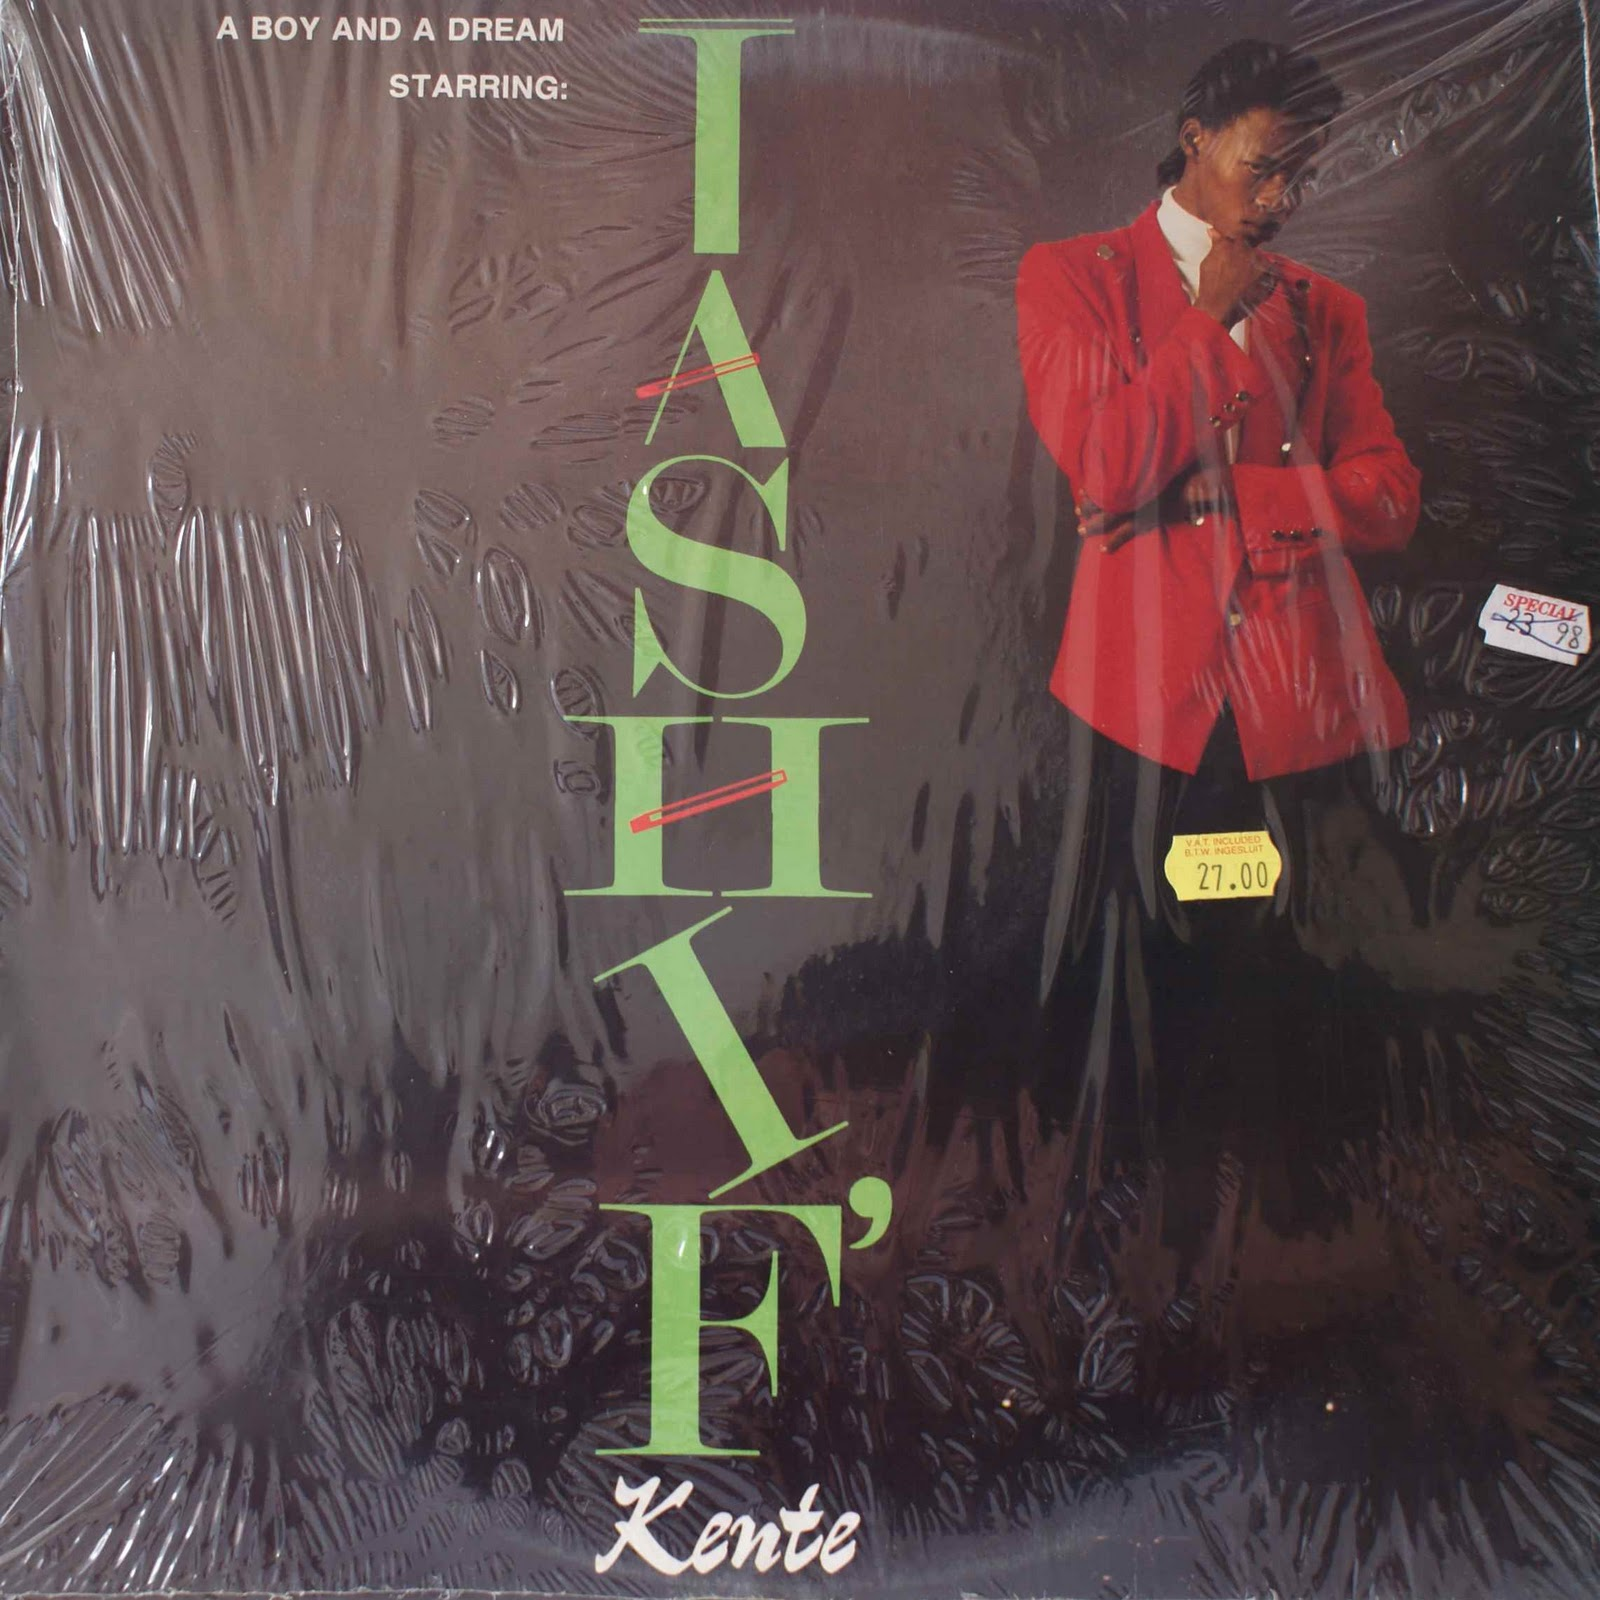 Afro-Synth: TASHIF' KENTE - A Boy and a Dream (1991)